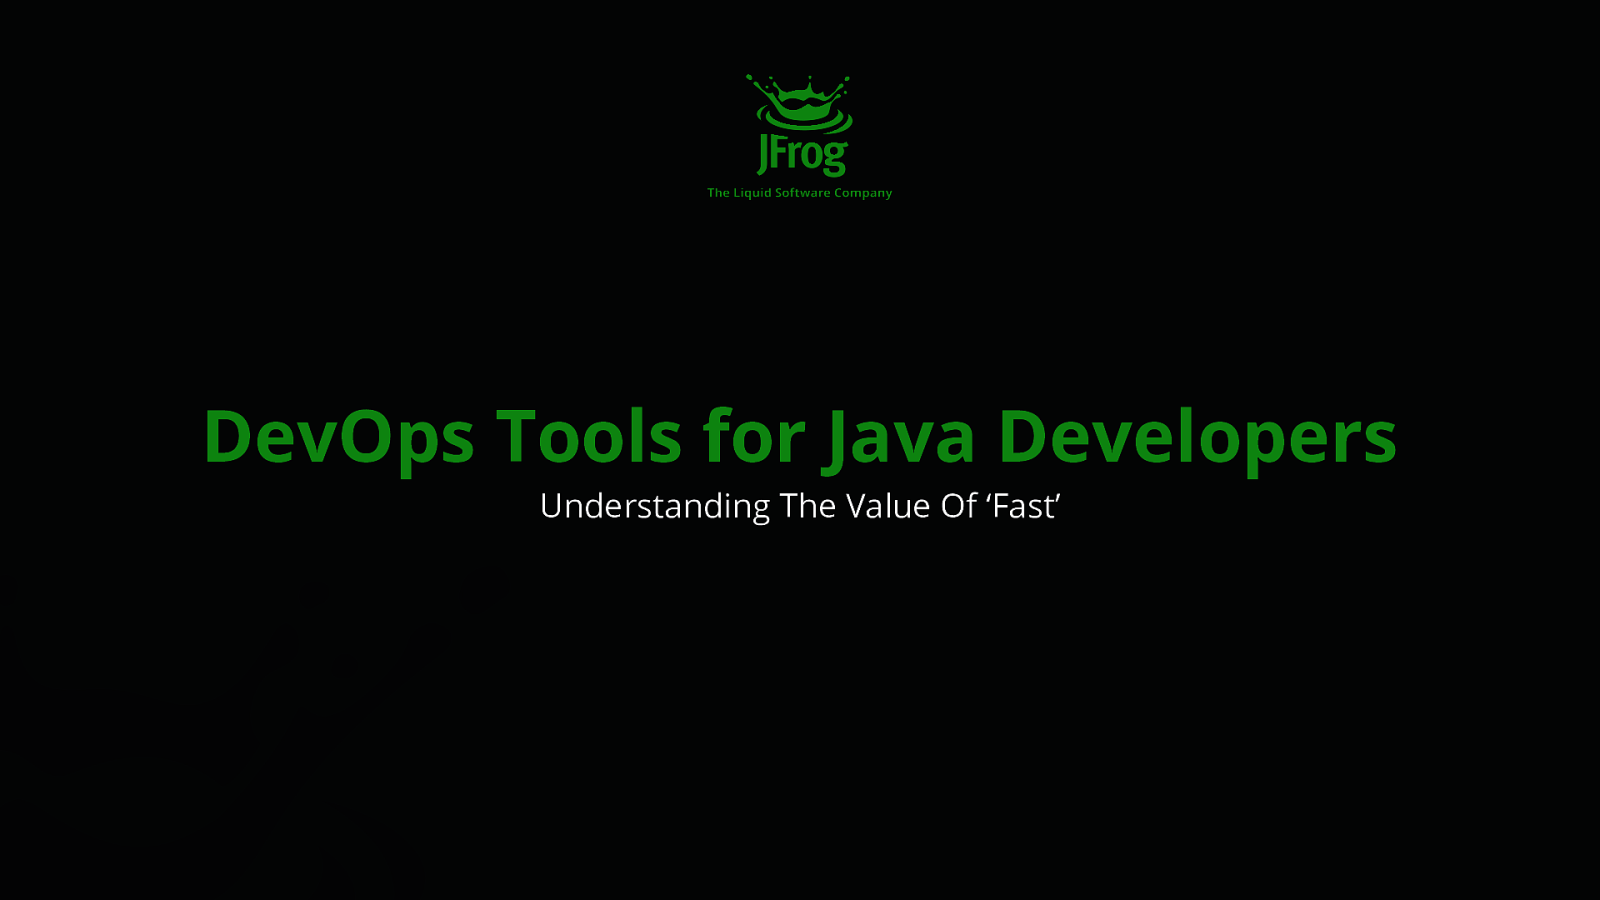 DevOps Tools for Developers